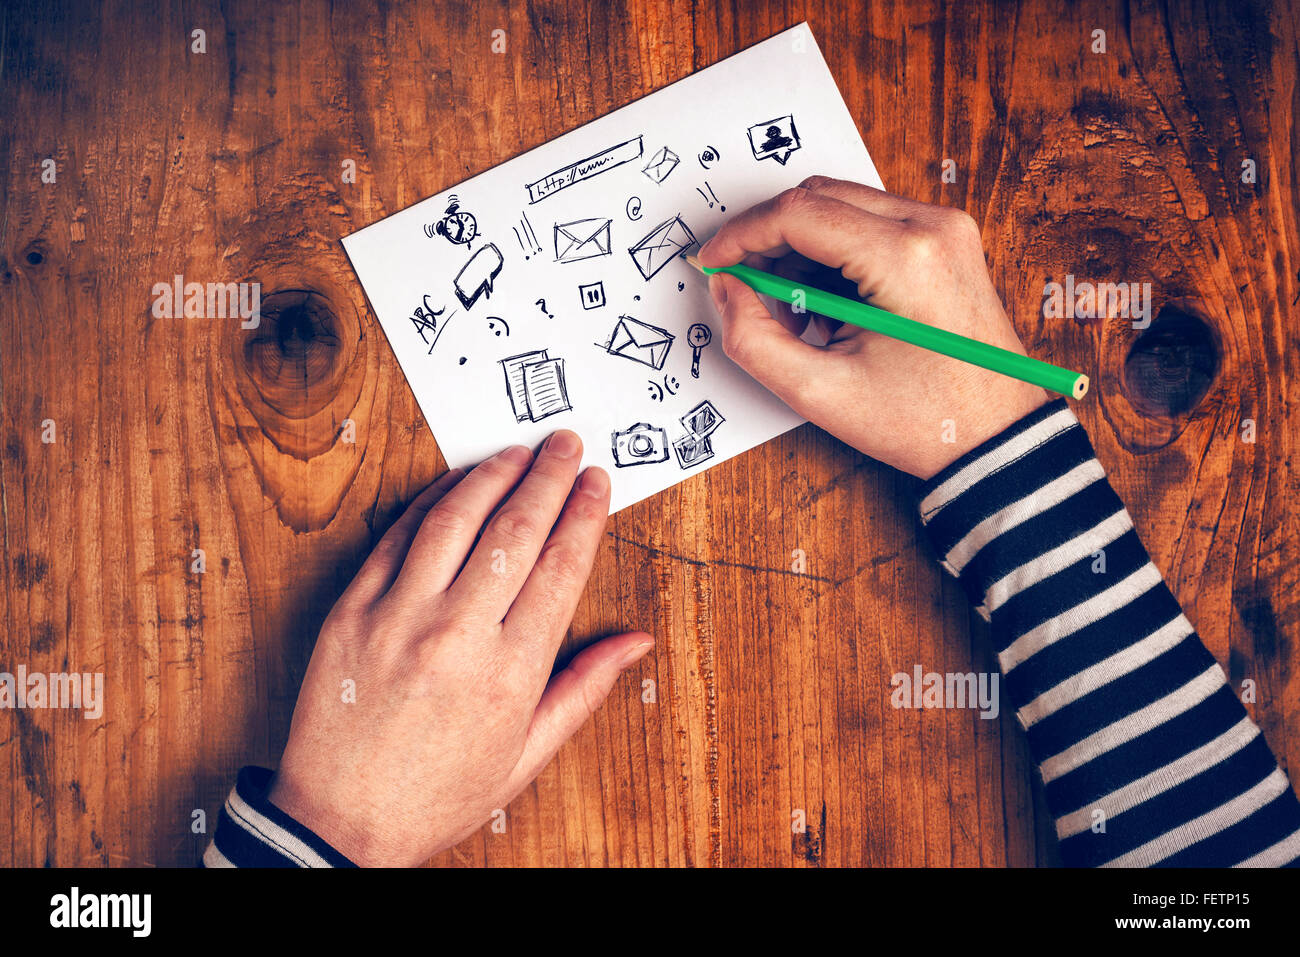 Female graphic designer sketching software icons on paper, top view, retro toned. - Stock Image